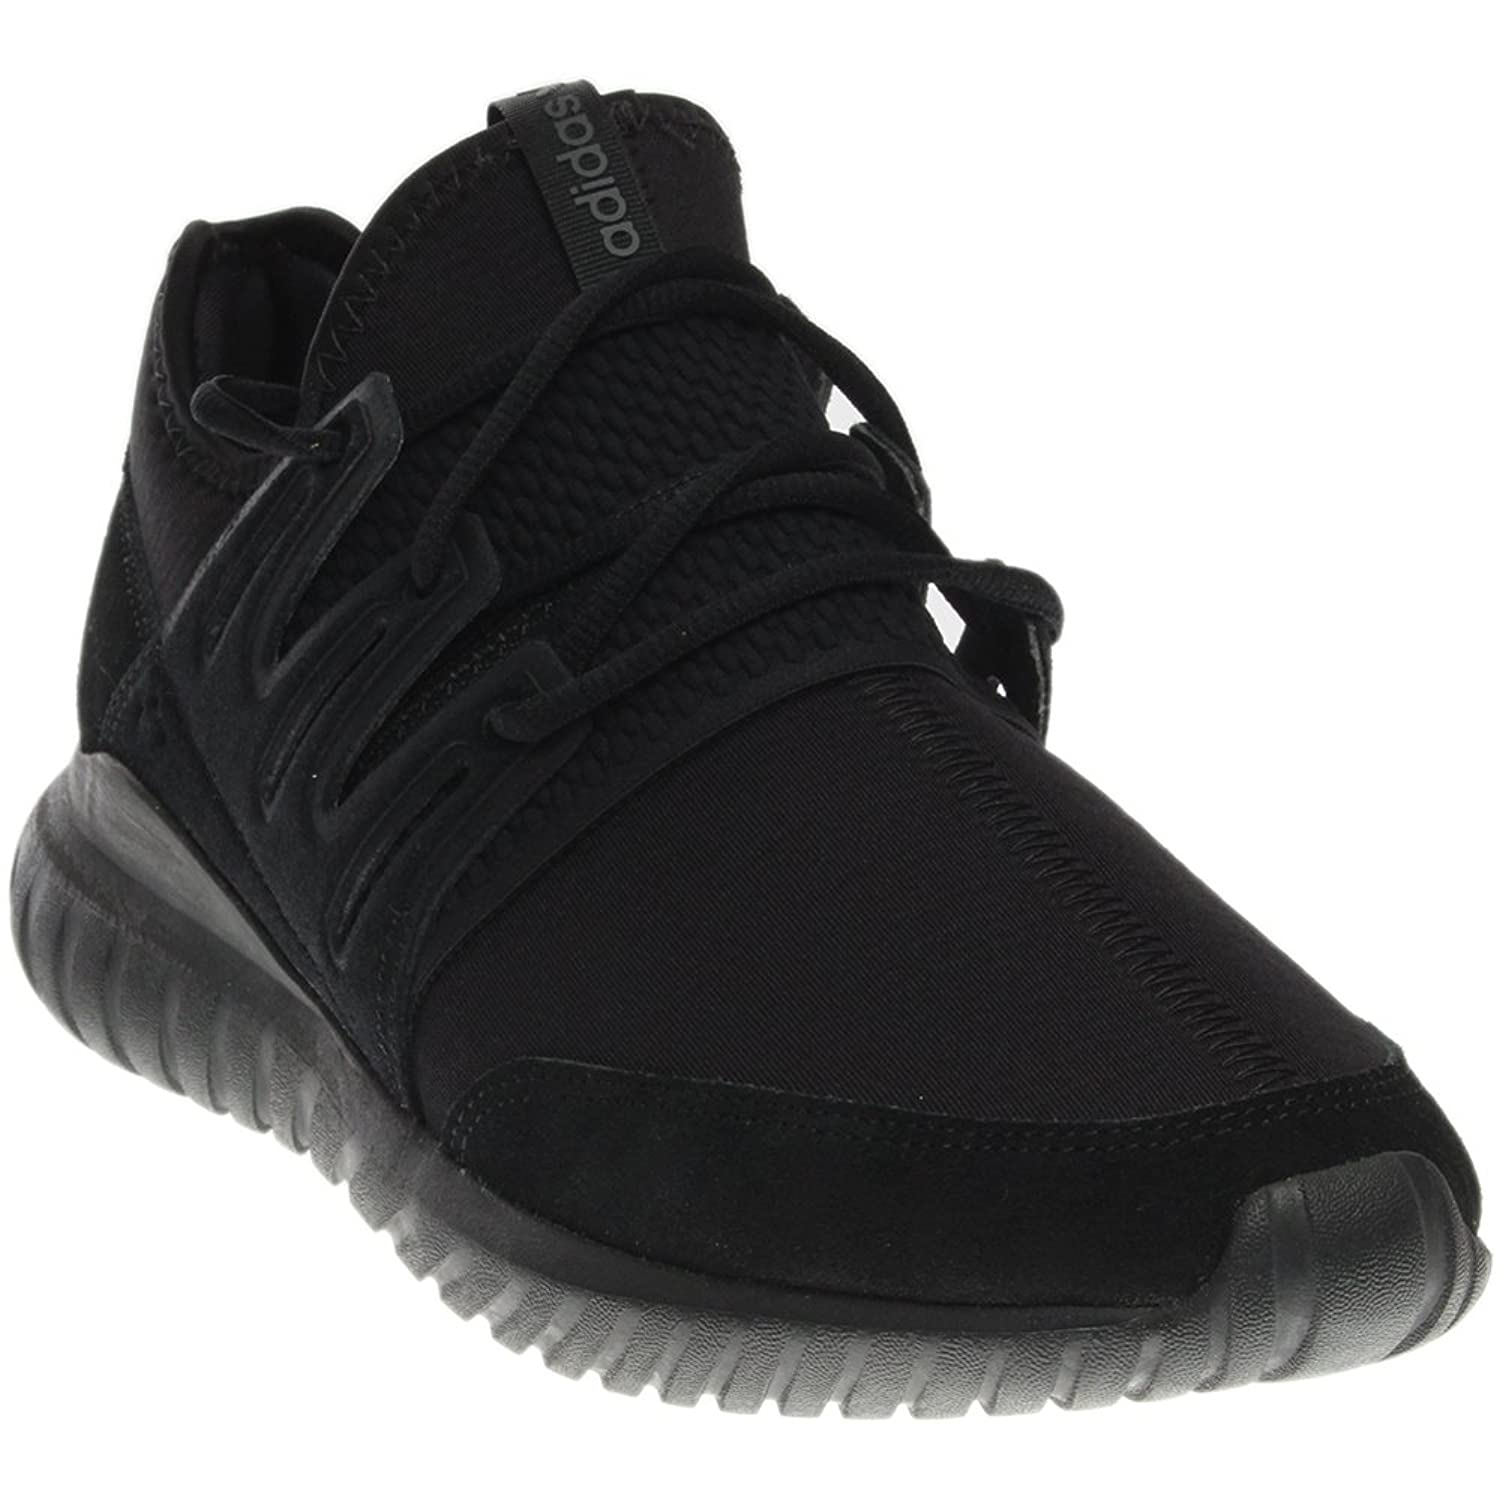 adidas NEWS STREAM : adidas Originals Tubular Radial Marle Pack